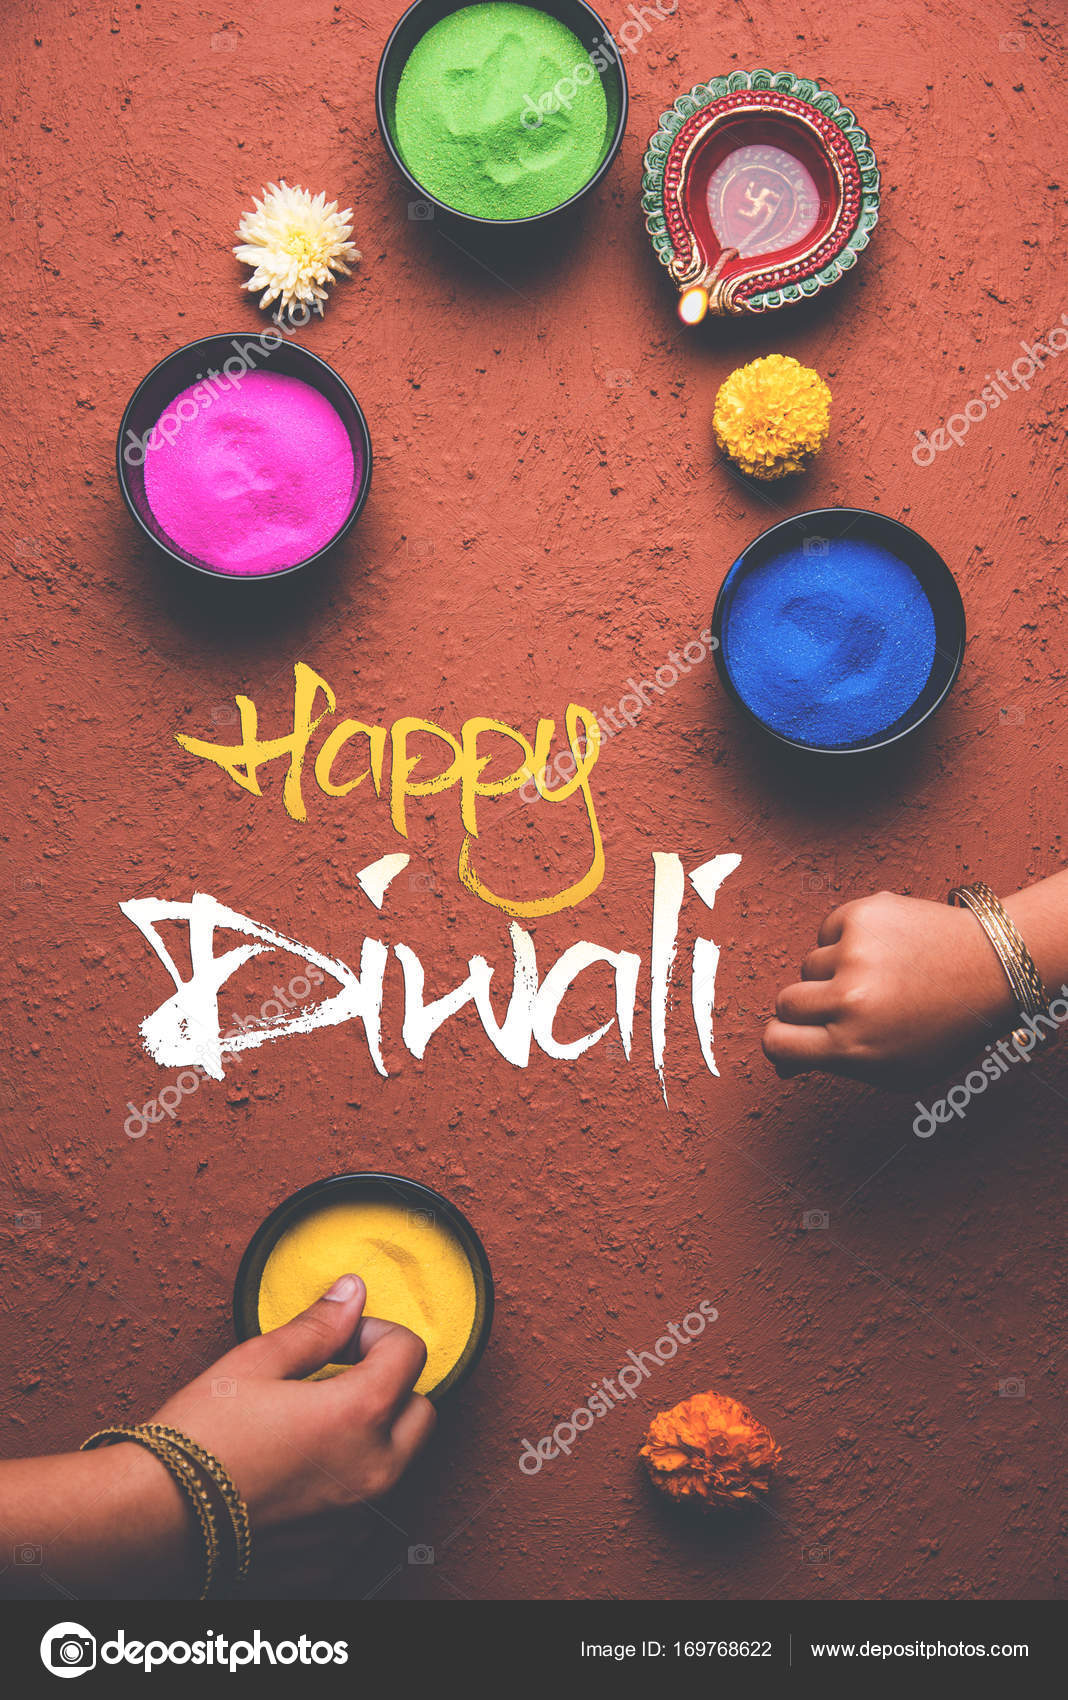 Stock photo of happy diwali greeting card clicked using elements of stock photo of happy diwali greeting card clicked using elements of diwali festival like colourful rangoli in bowls diwali clay lamp or diya and girl or m4hsunfo